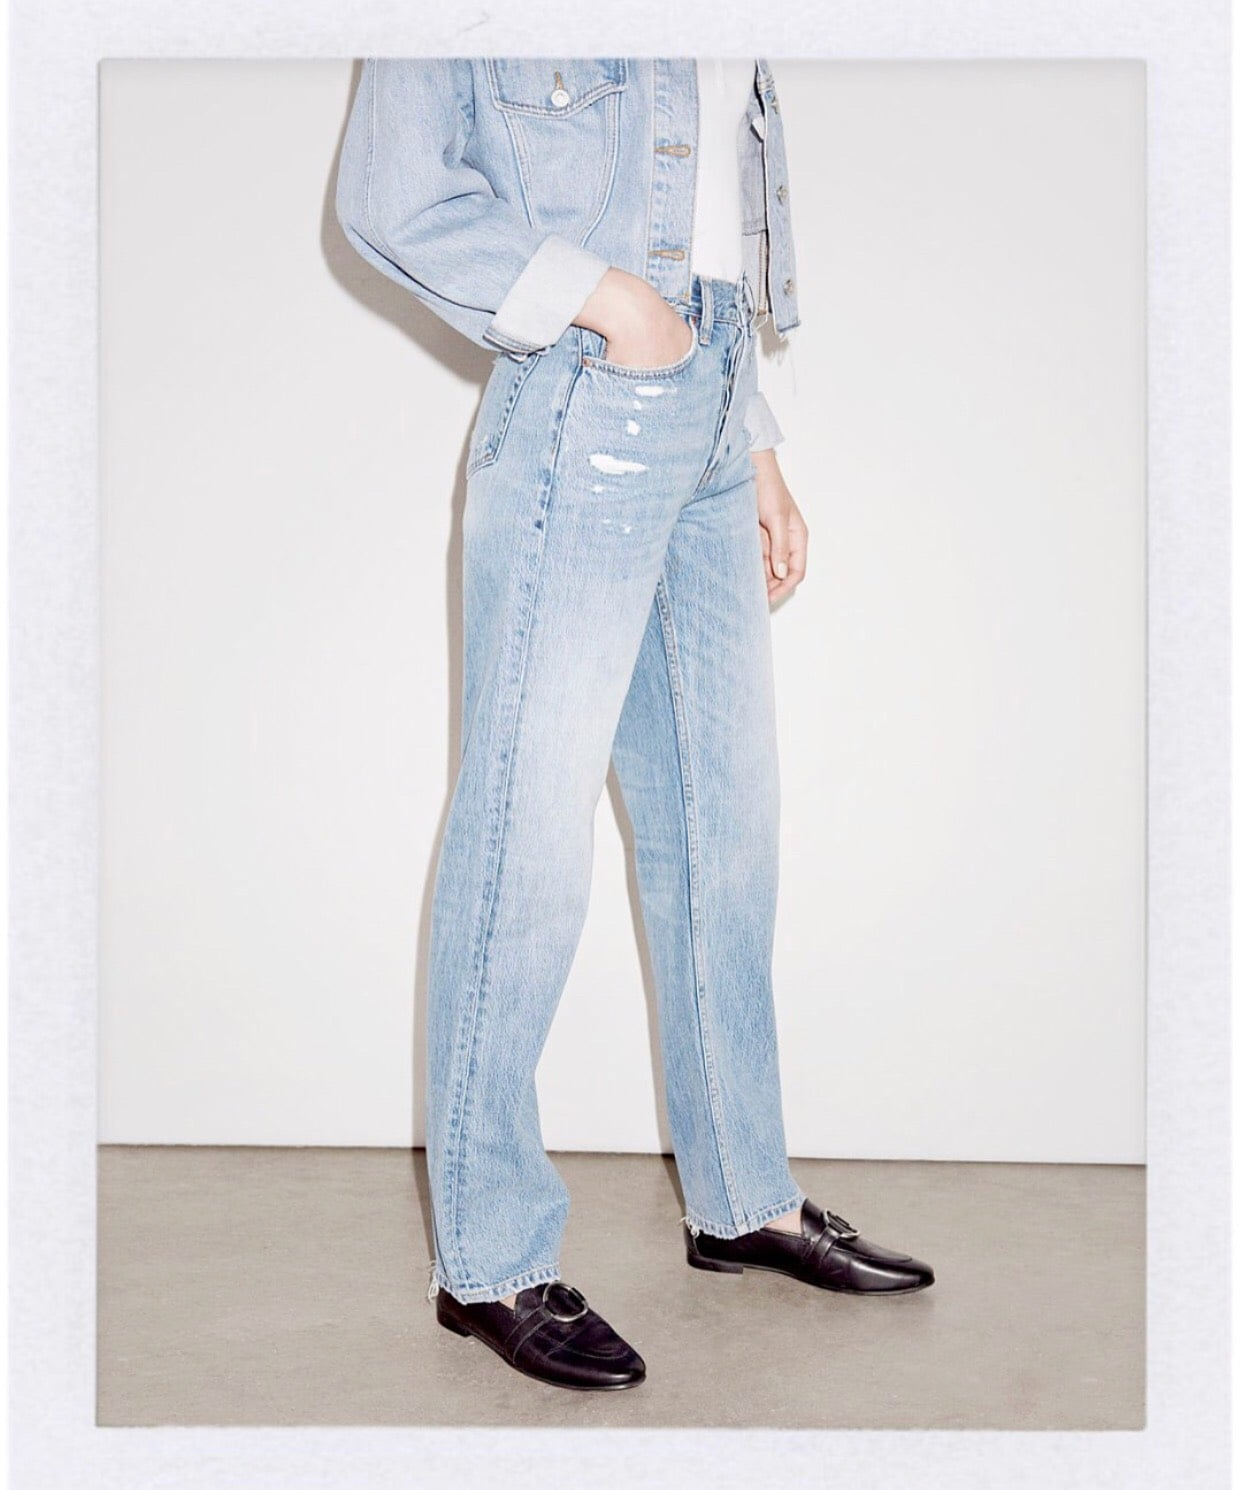 35fcbf5d4d9 Some vintage denim wearers will tell you there s nothing quite like the  real deal